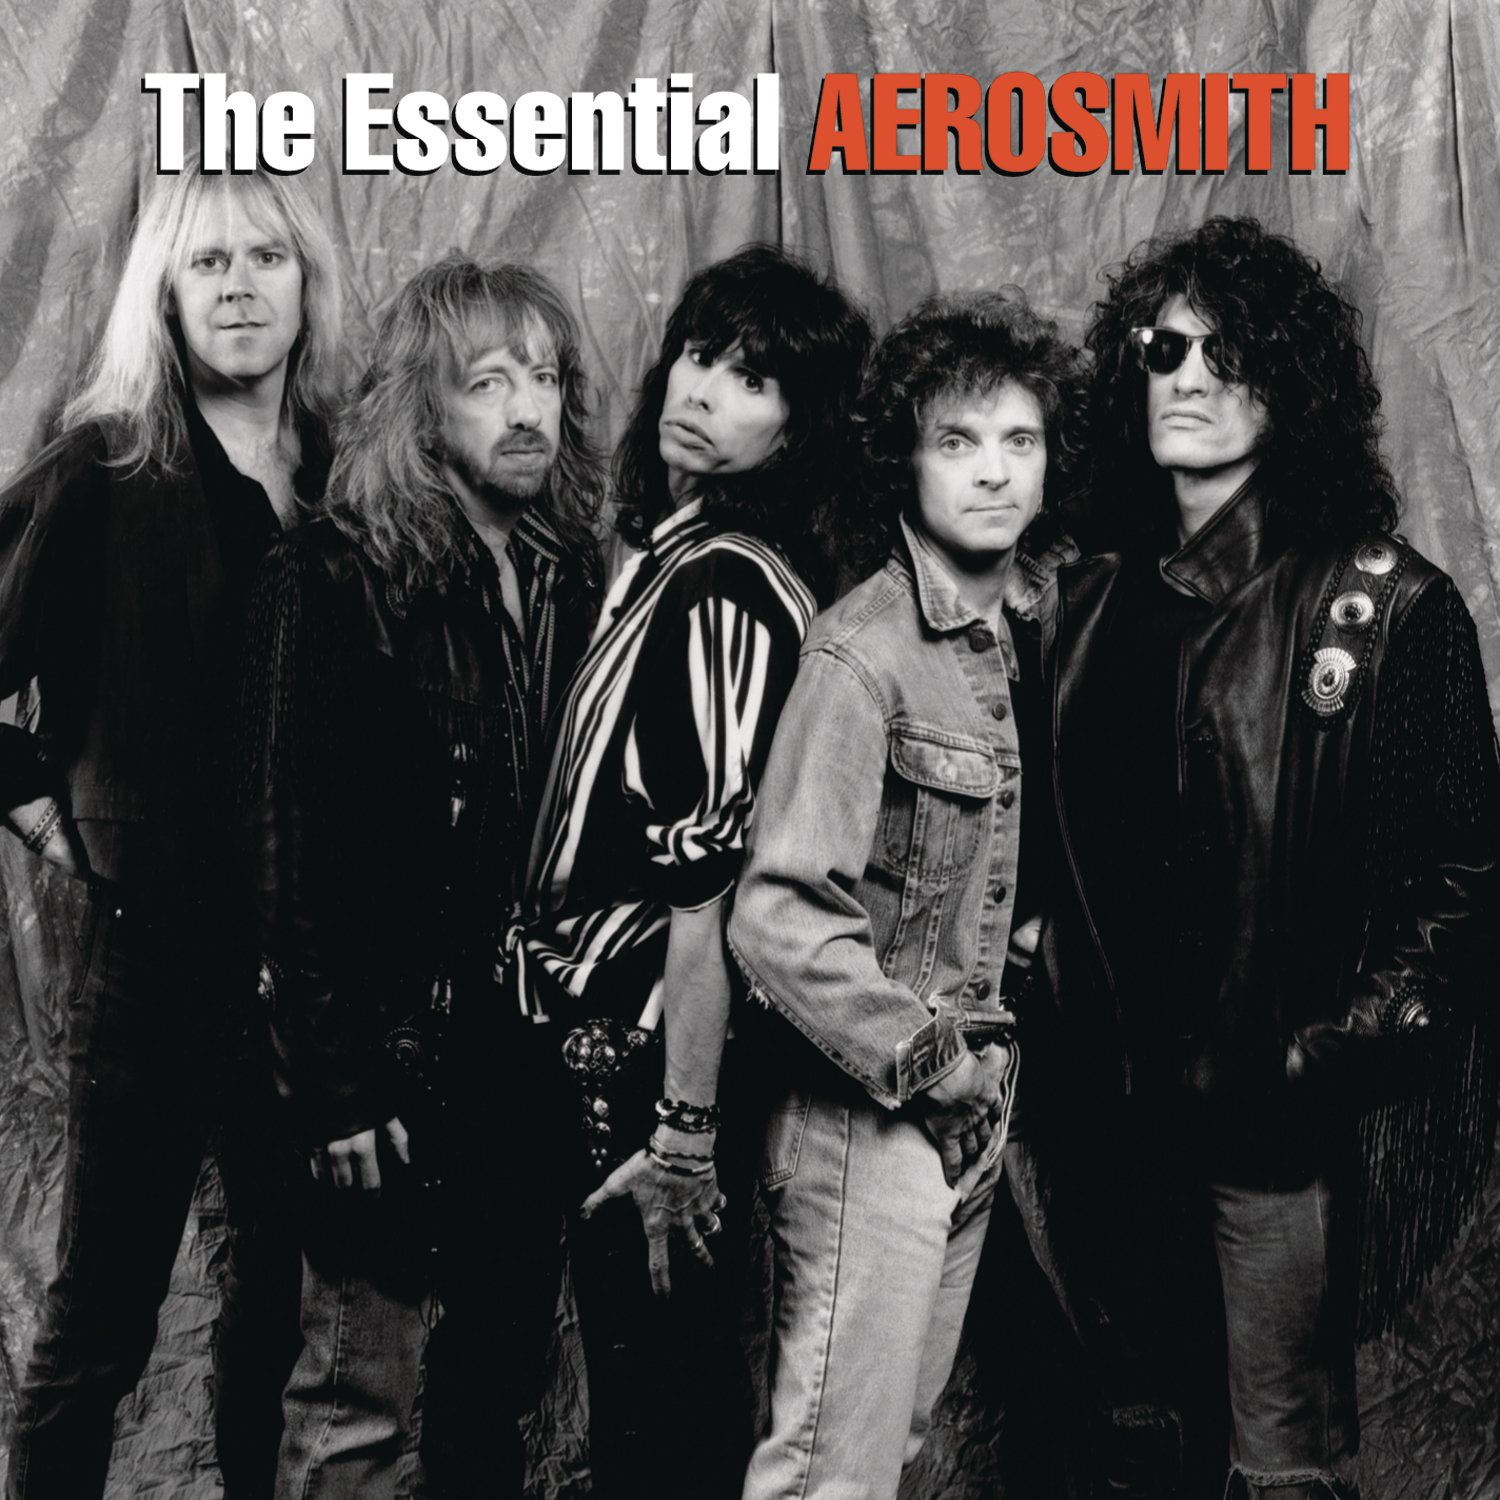 The Essential Aerosmith by Columbia